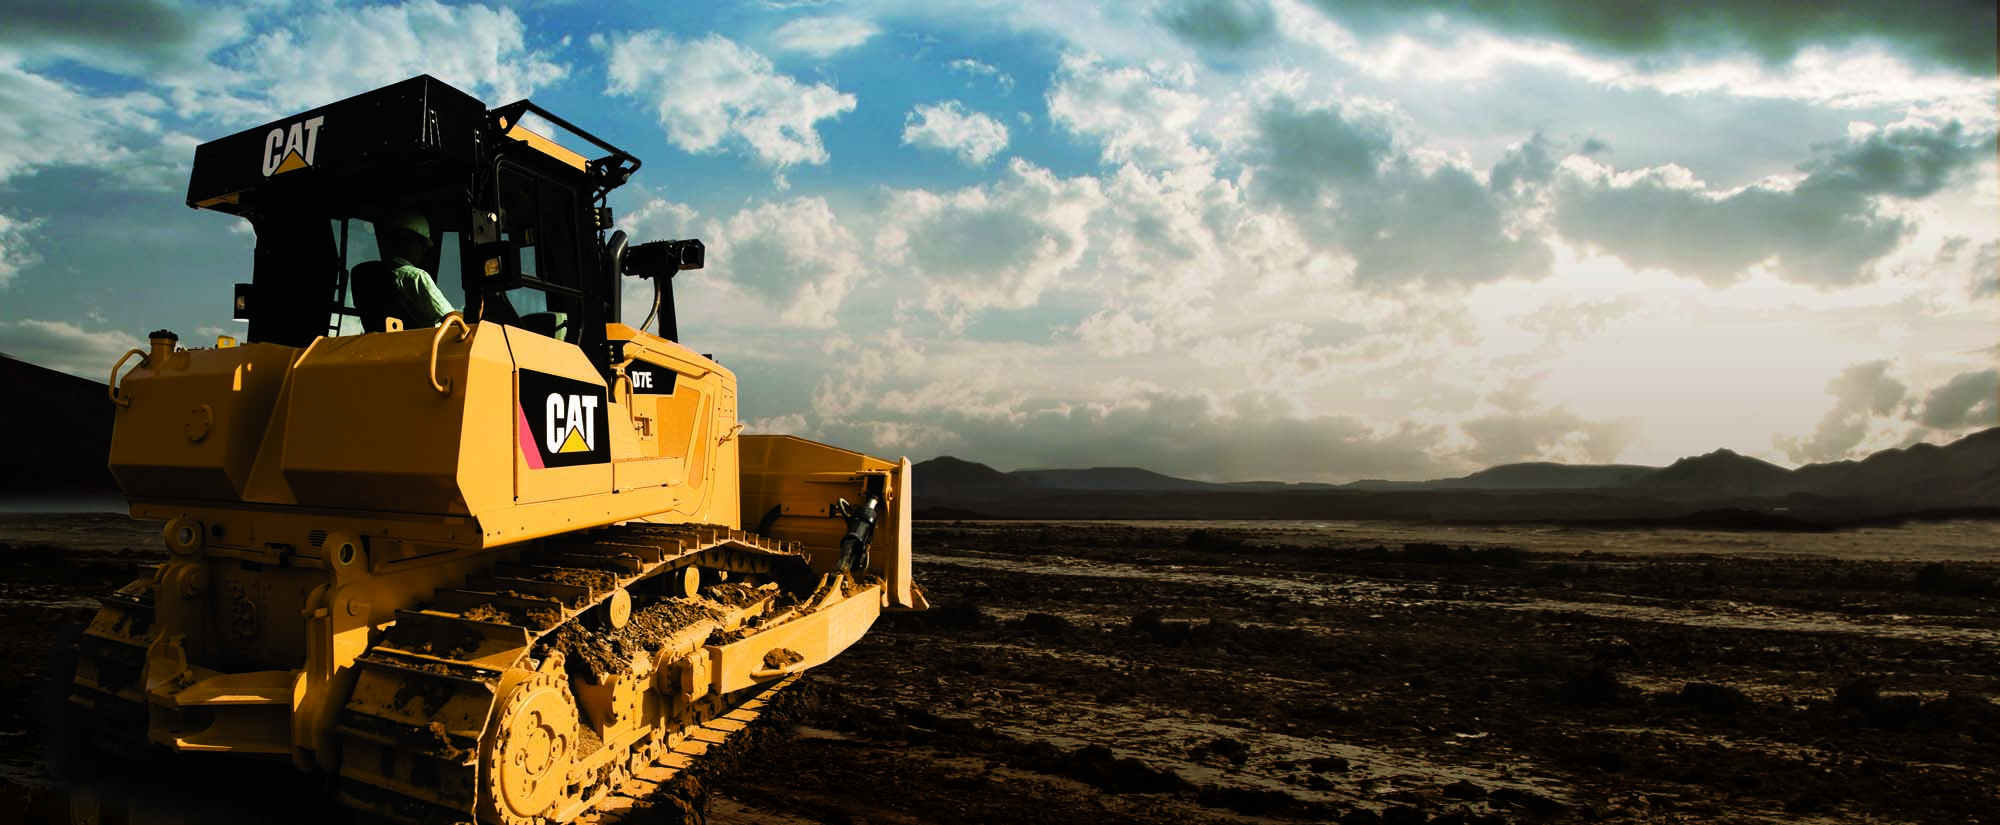 Caterpillar D7 | Military Wiki | FANDOM powered by Wikia